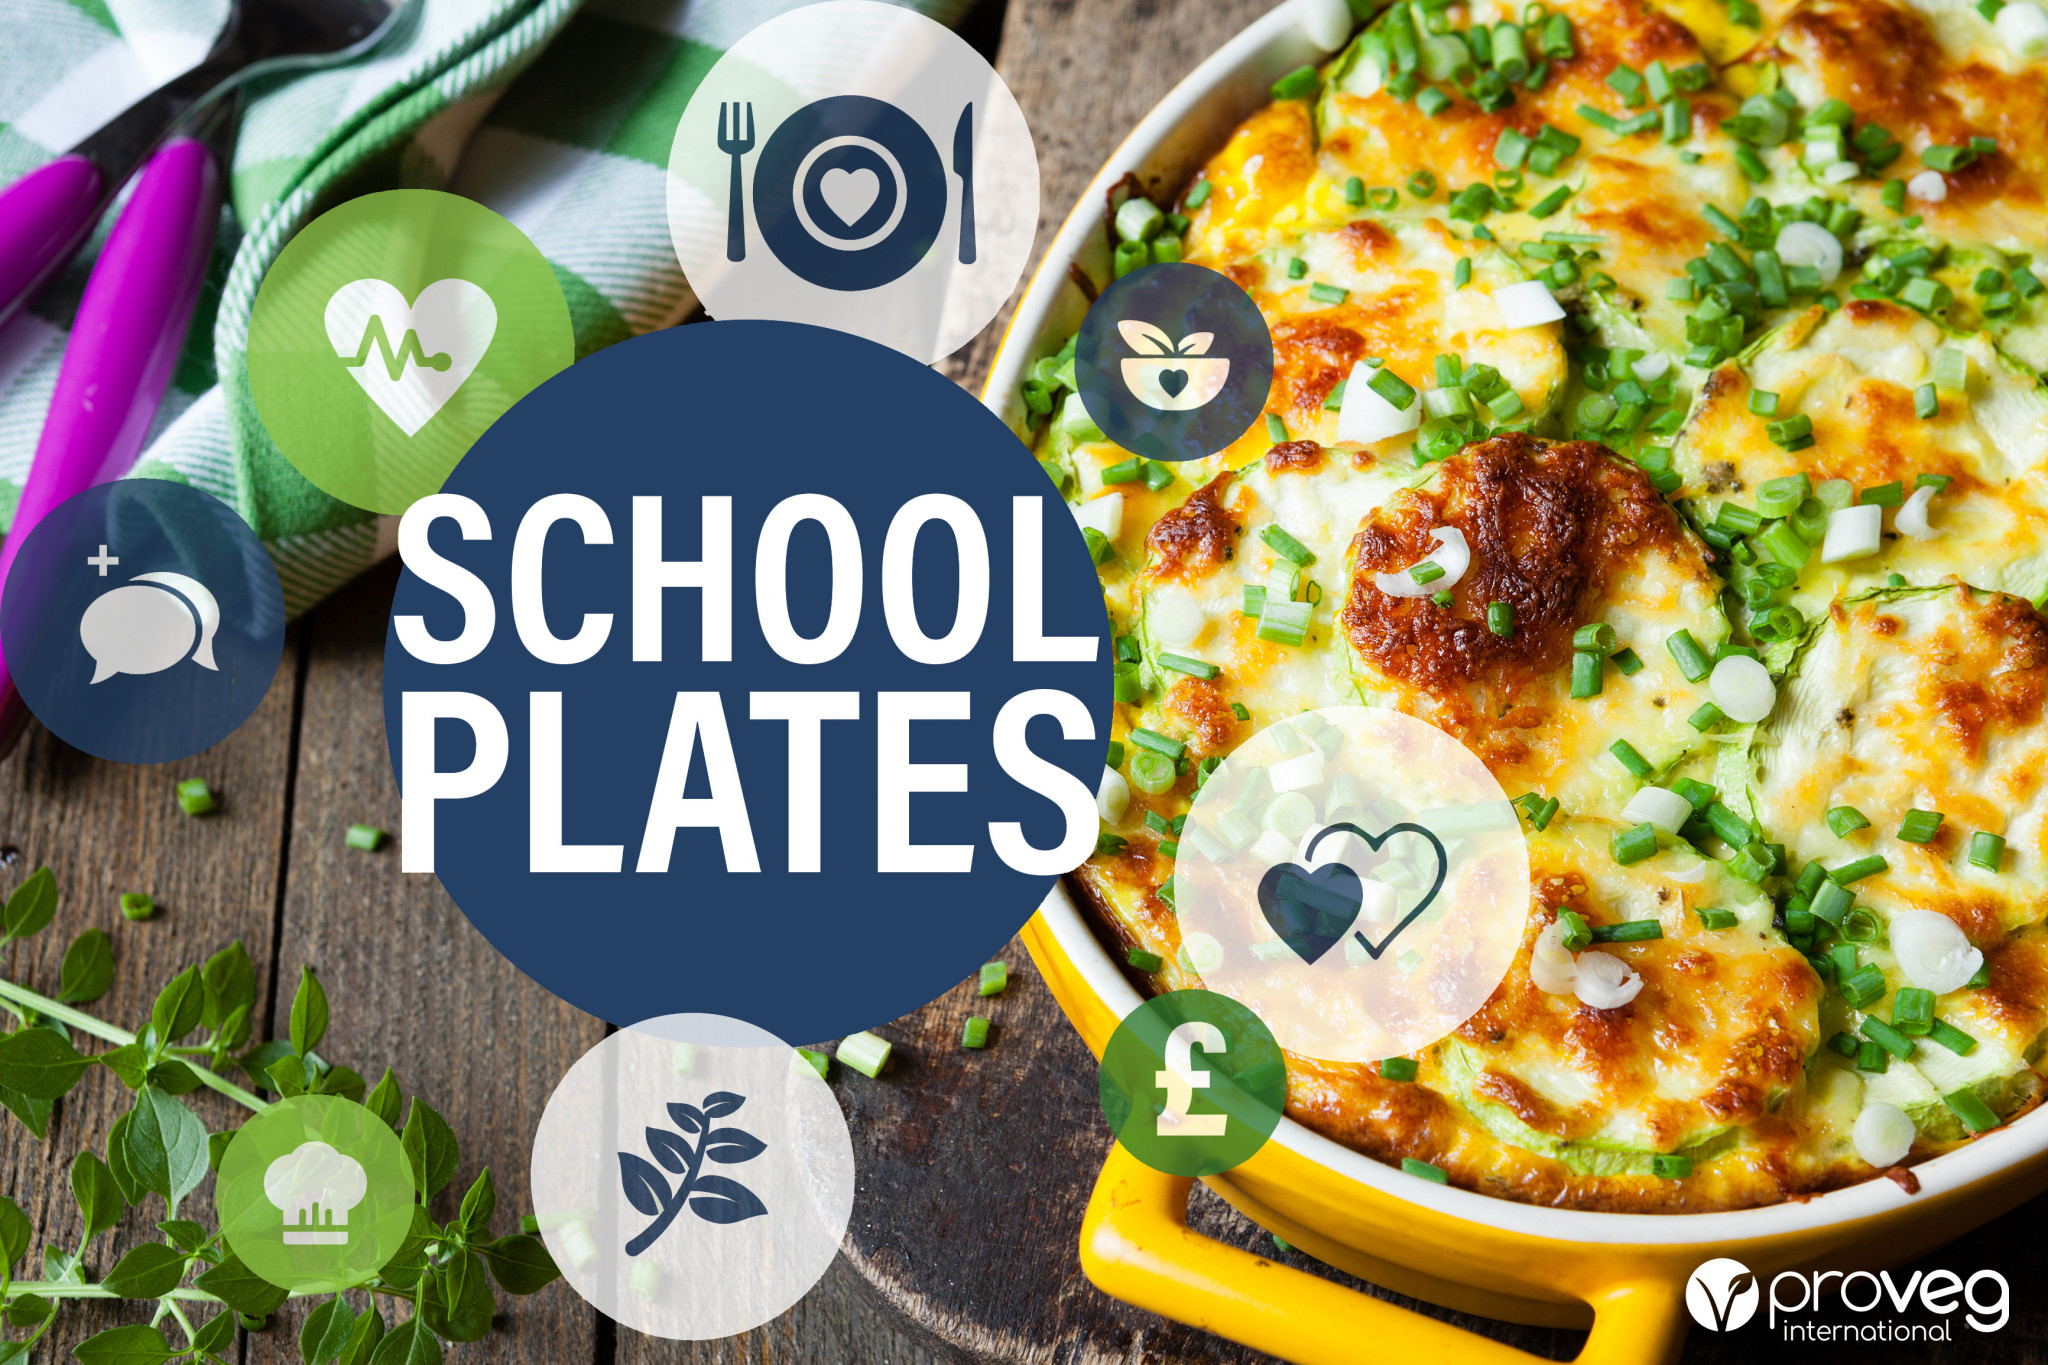 primary school meals go meat-free